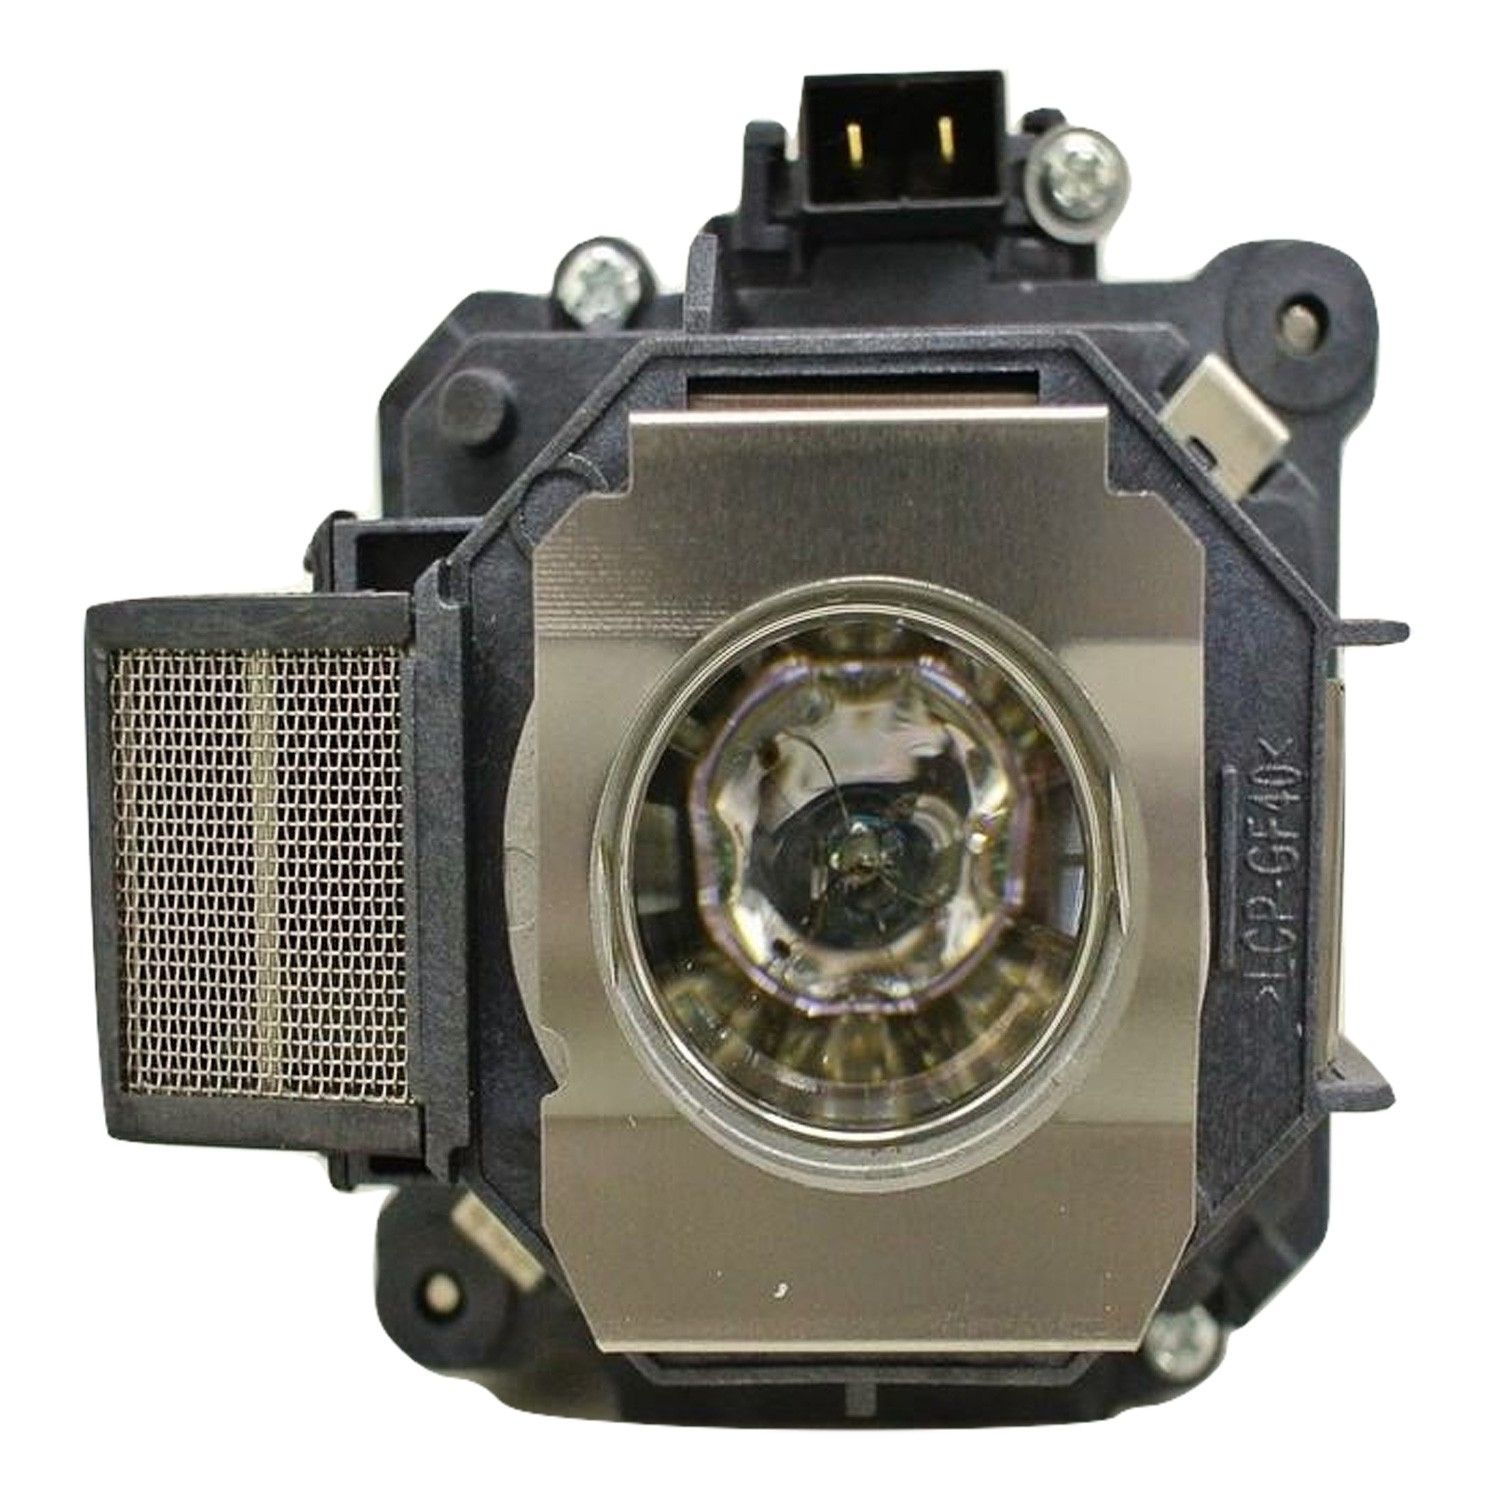 Lamp. videoproiet. v13h010l63 V7 - LAMPS V13H010L63-V7-1E 662919095845 V13H010L63-V7-1E by V7 - Lamps